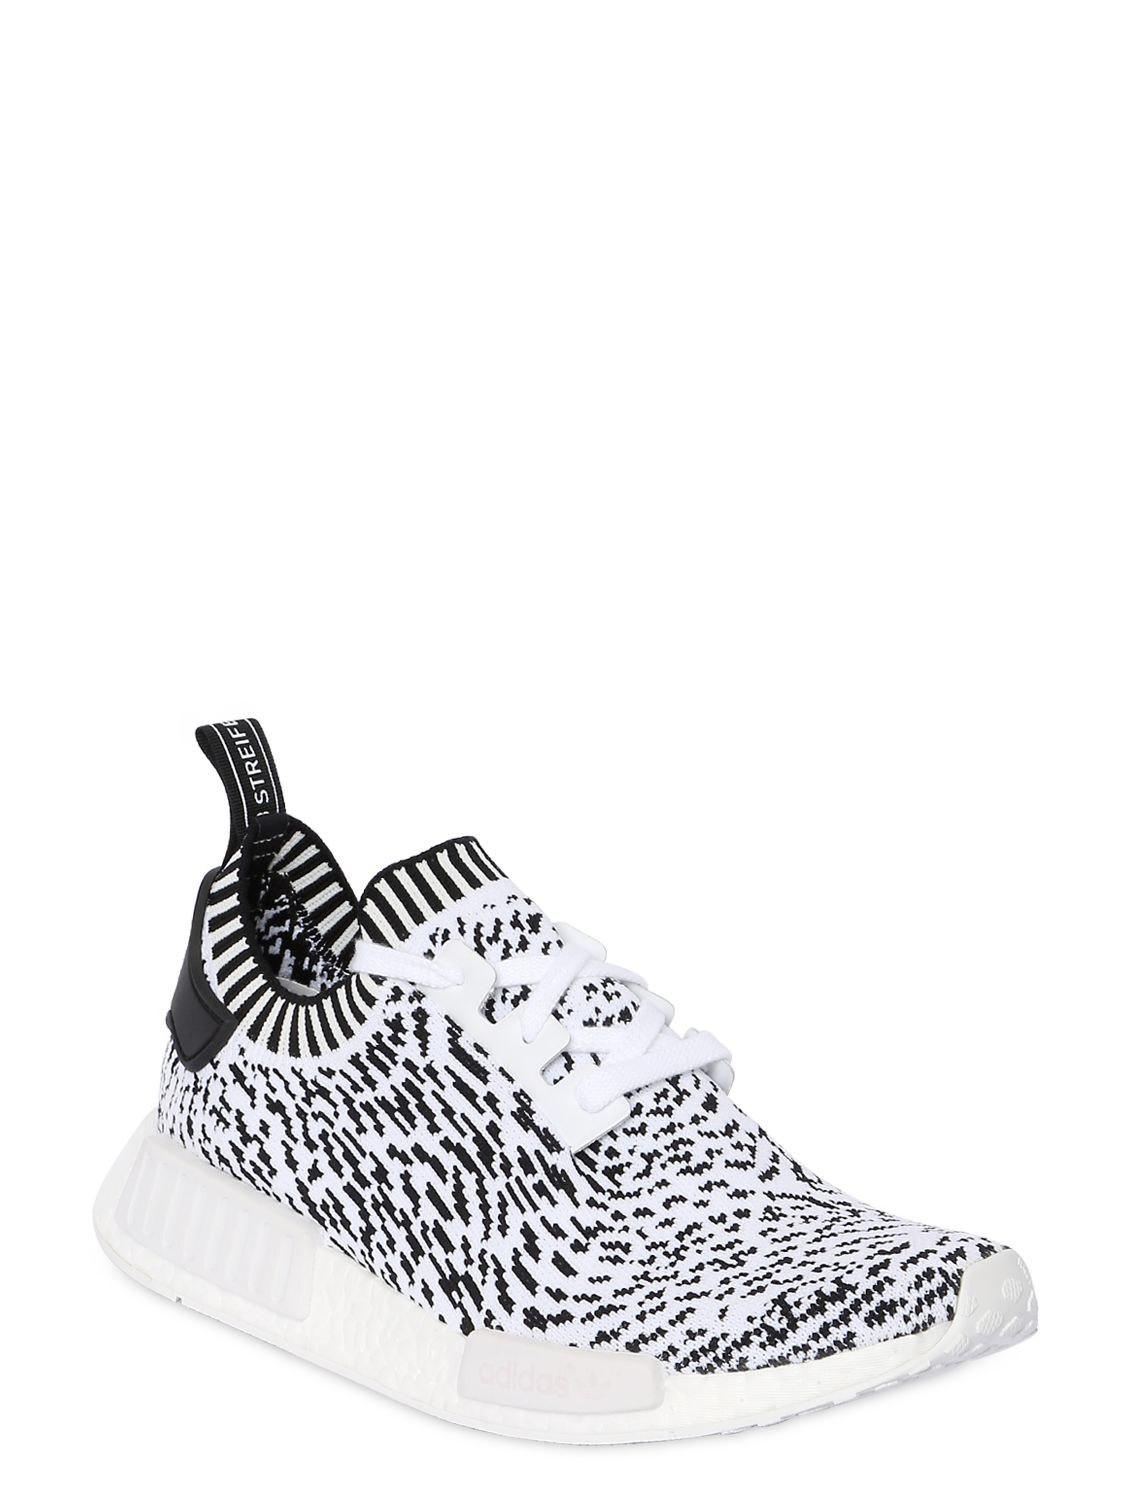 9314bee7e Lyst - adidas Originals Nmd R1 Primeknit Sneakers in White for Men - Save  15%